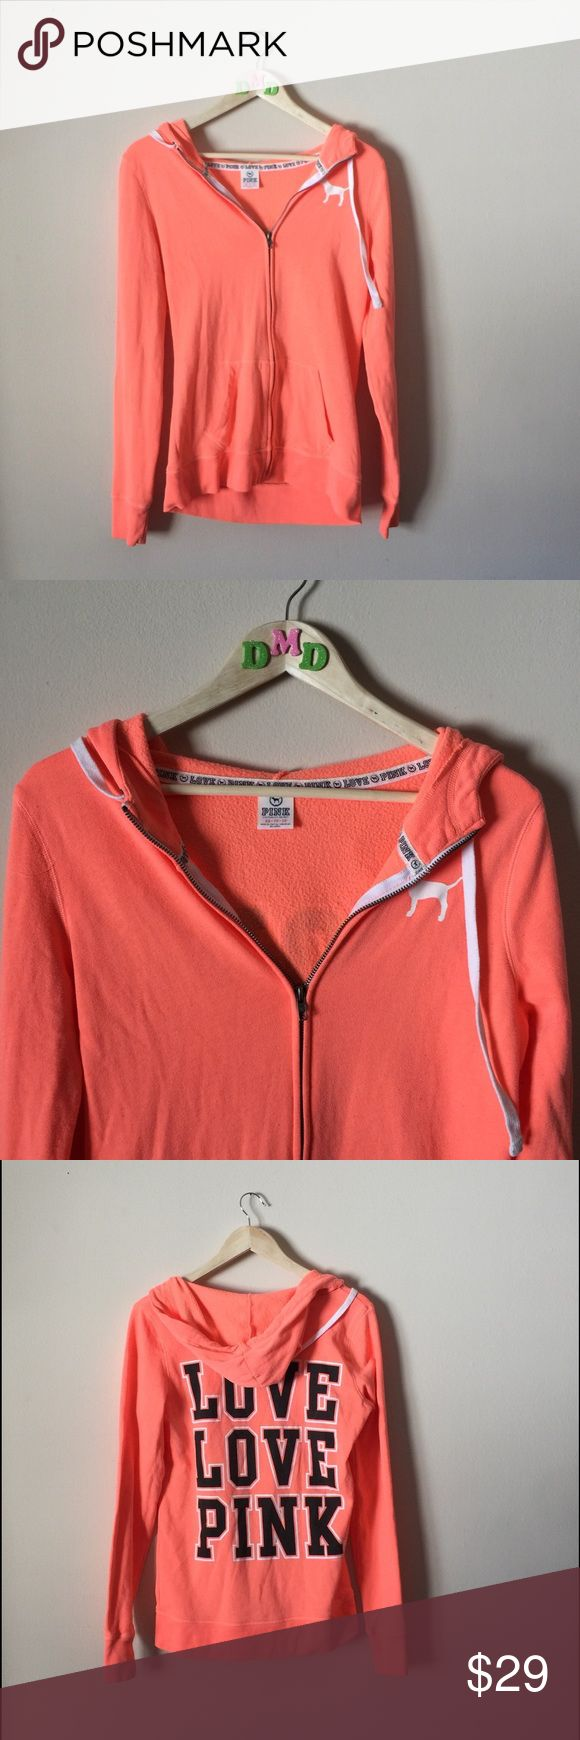 LIKE NEW • Bright neon orange PINK zipper up ♠️ This VS Pink bright neon orange zipped up hooded sweatshirt that says LOVE LOVE PINK on the back. absolutely nothing wrong with this sweatshirt at all. only been worn a handful of times.  ♠️ SIZE • x-small  ☠️ BUNDLEtoSAVE ☠️ ACCEPTING OFFERS ☠️ 〰    #pink #vs #hoodie #victoriasecret #zipperup #euc #neon #orange #bright #gym #sweat PINK Victoria's Secret Tops Sweatshirts & Hoodies